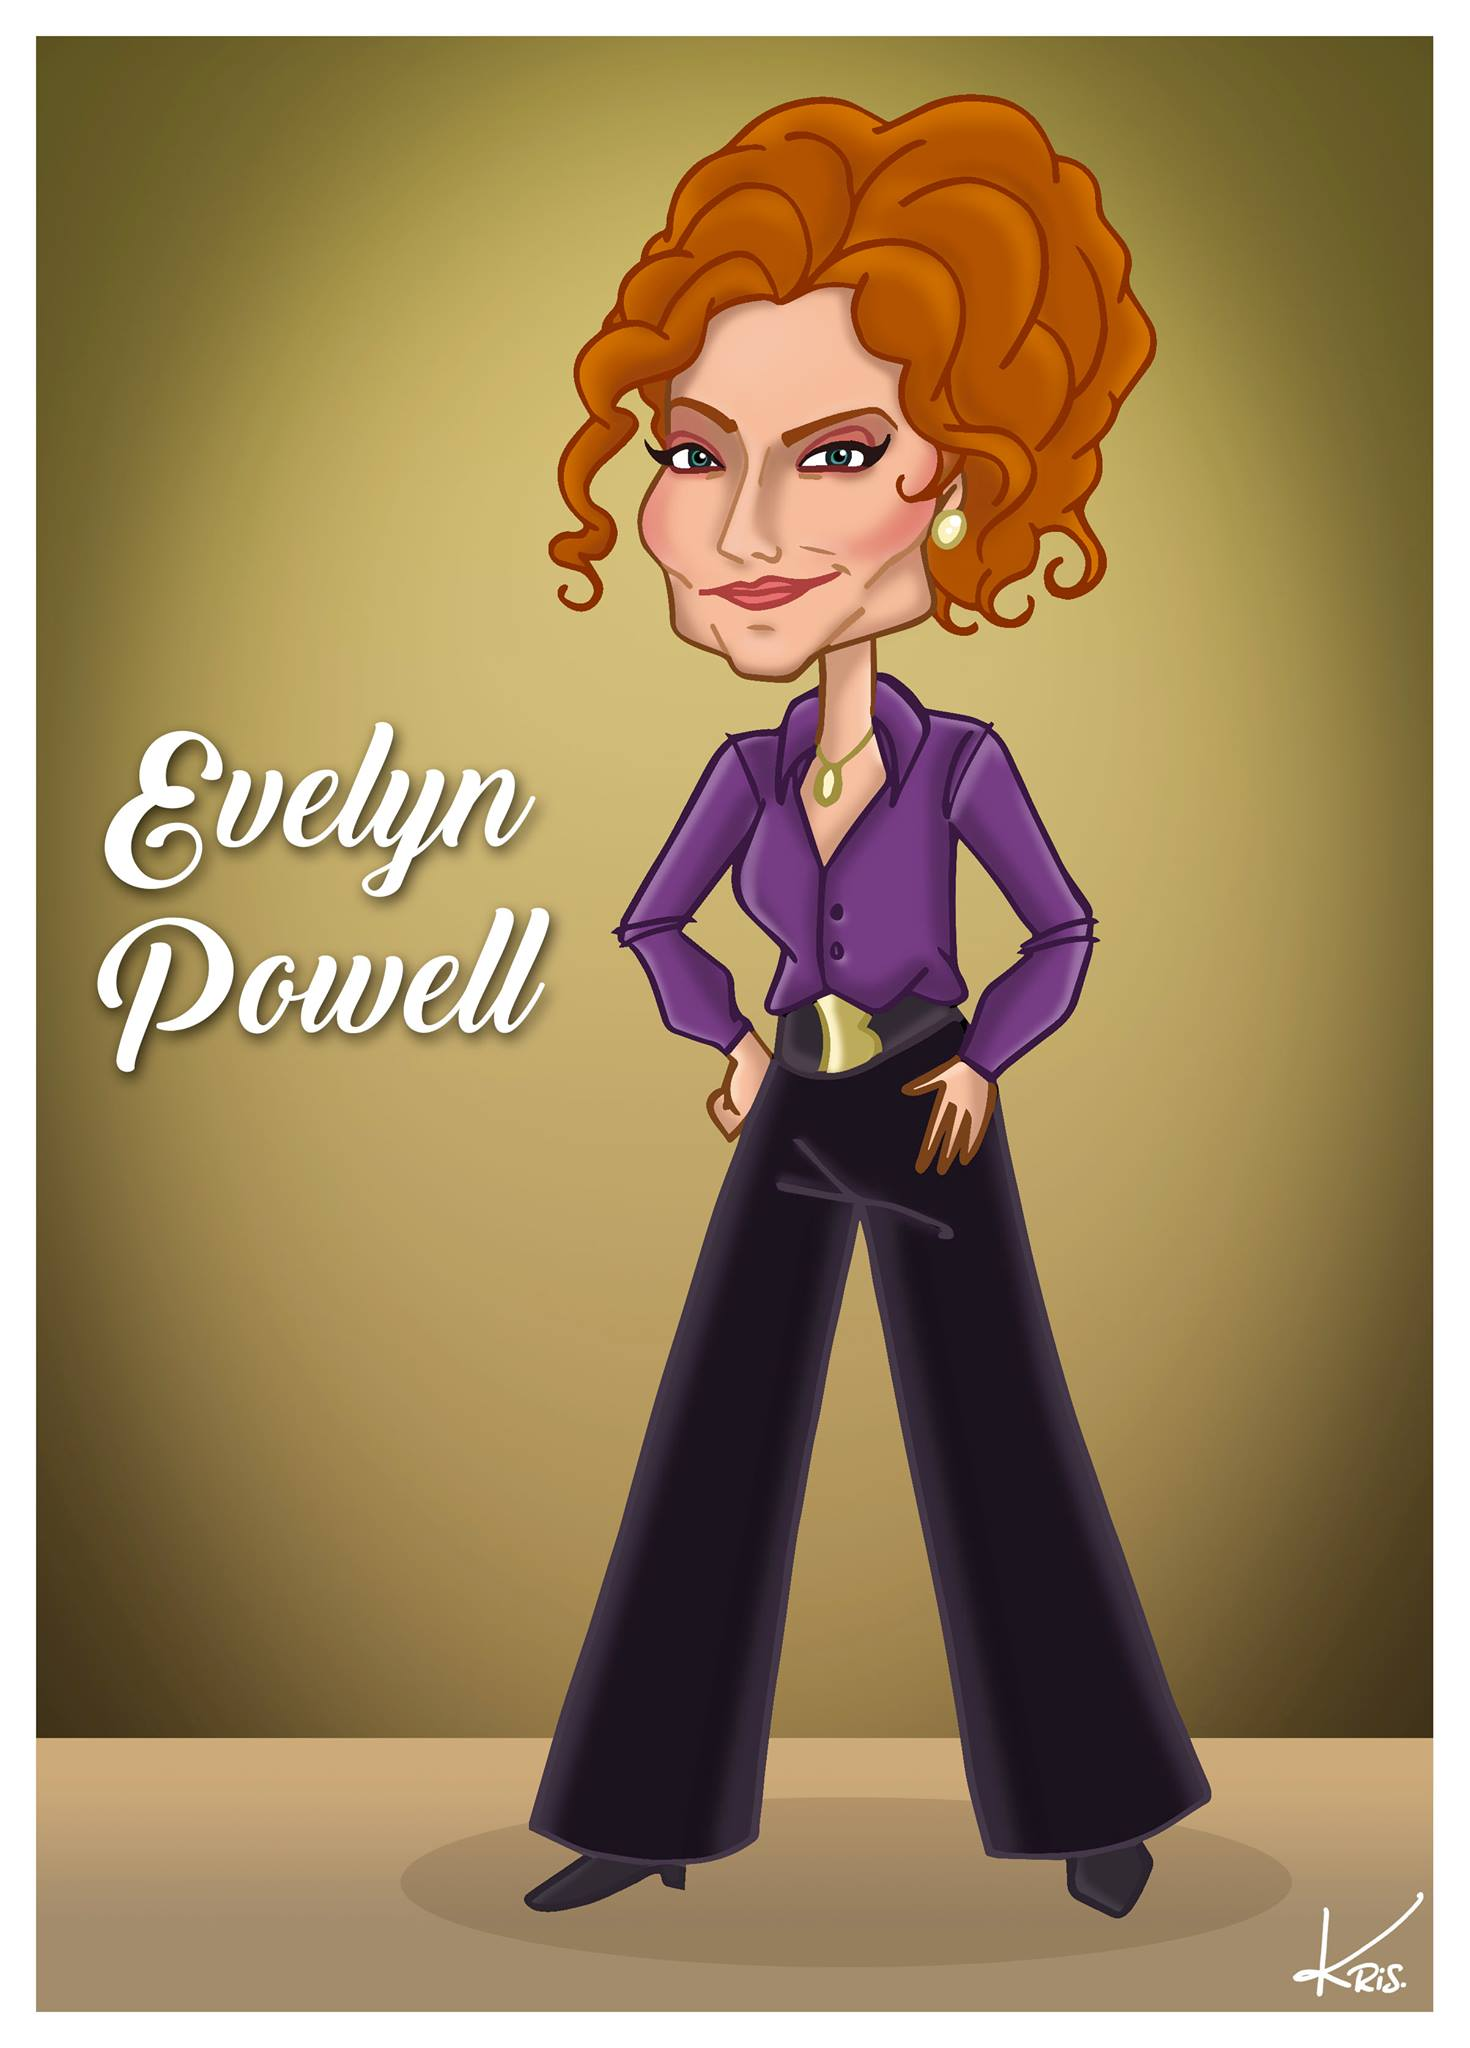 Evelyn Powell - Devious Maids